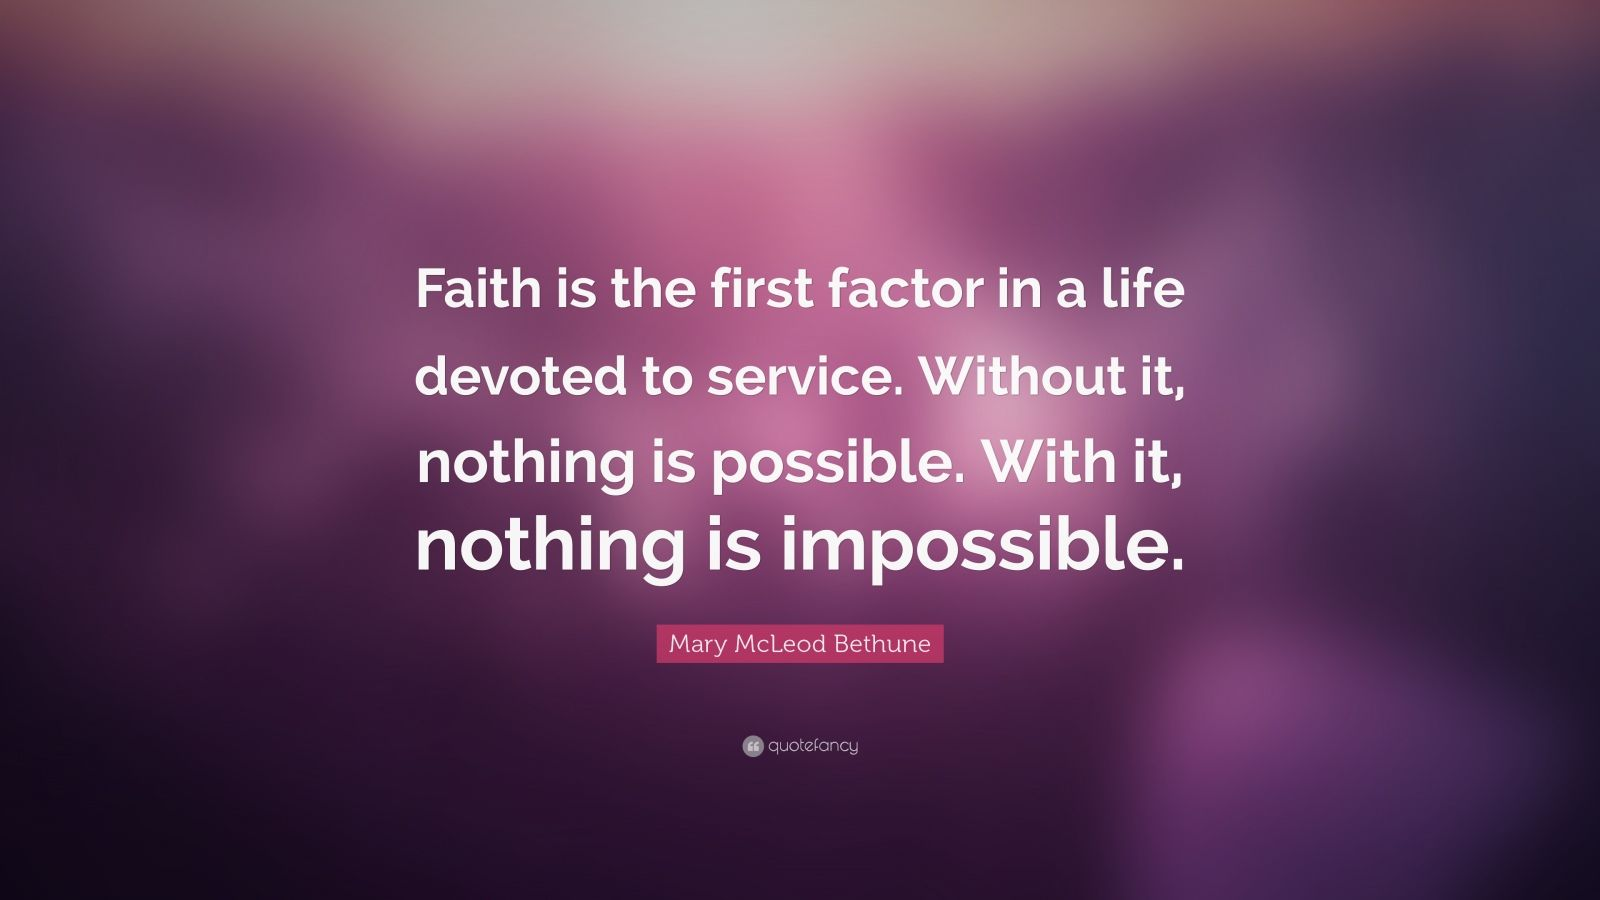 """Mary McLeod Bethune Quote: """"Faith is the first factor in a life devoted to service. Without it, nothing is possible. With it, nothing is impossible."""""""